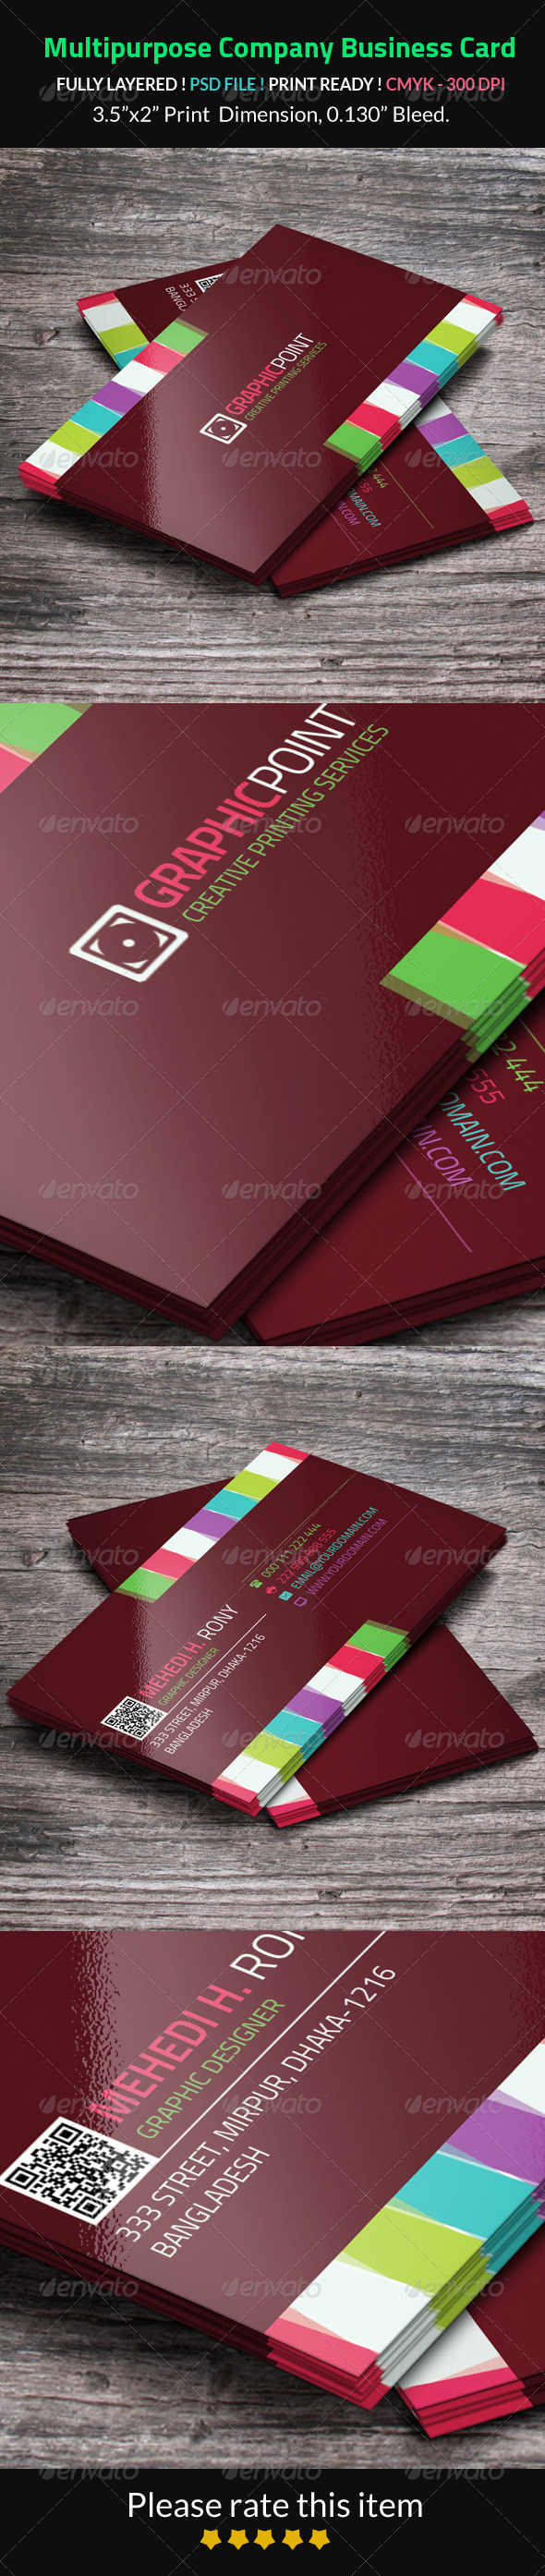 GraphicRiver Multipurpose Company Business Card 8251922